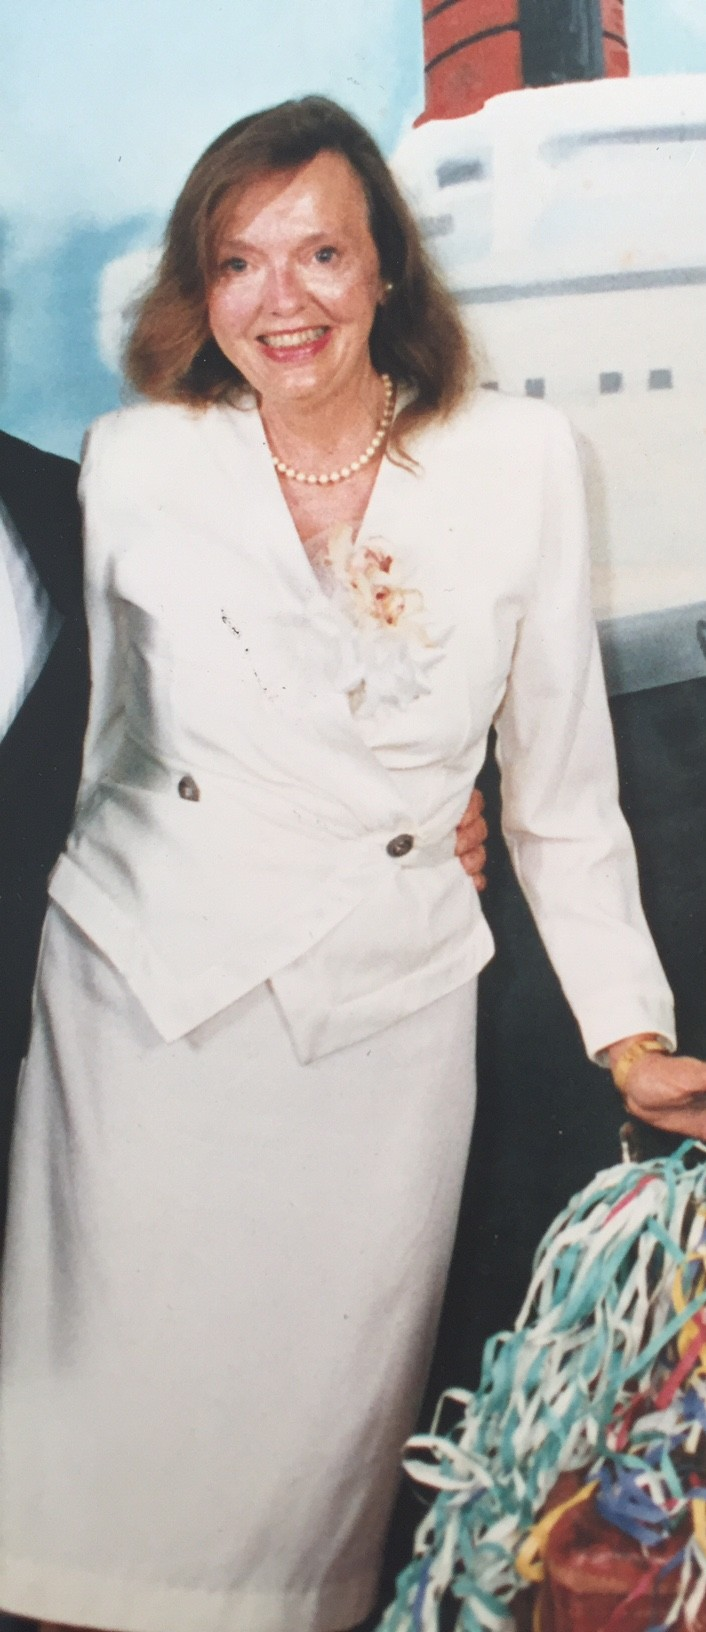 Margaret Giovanniello was a successful lawyer and a New York State  administrative law judge.